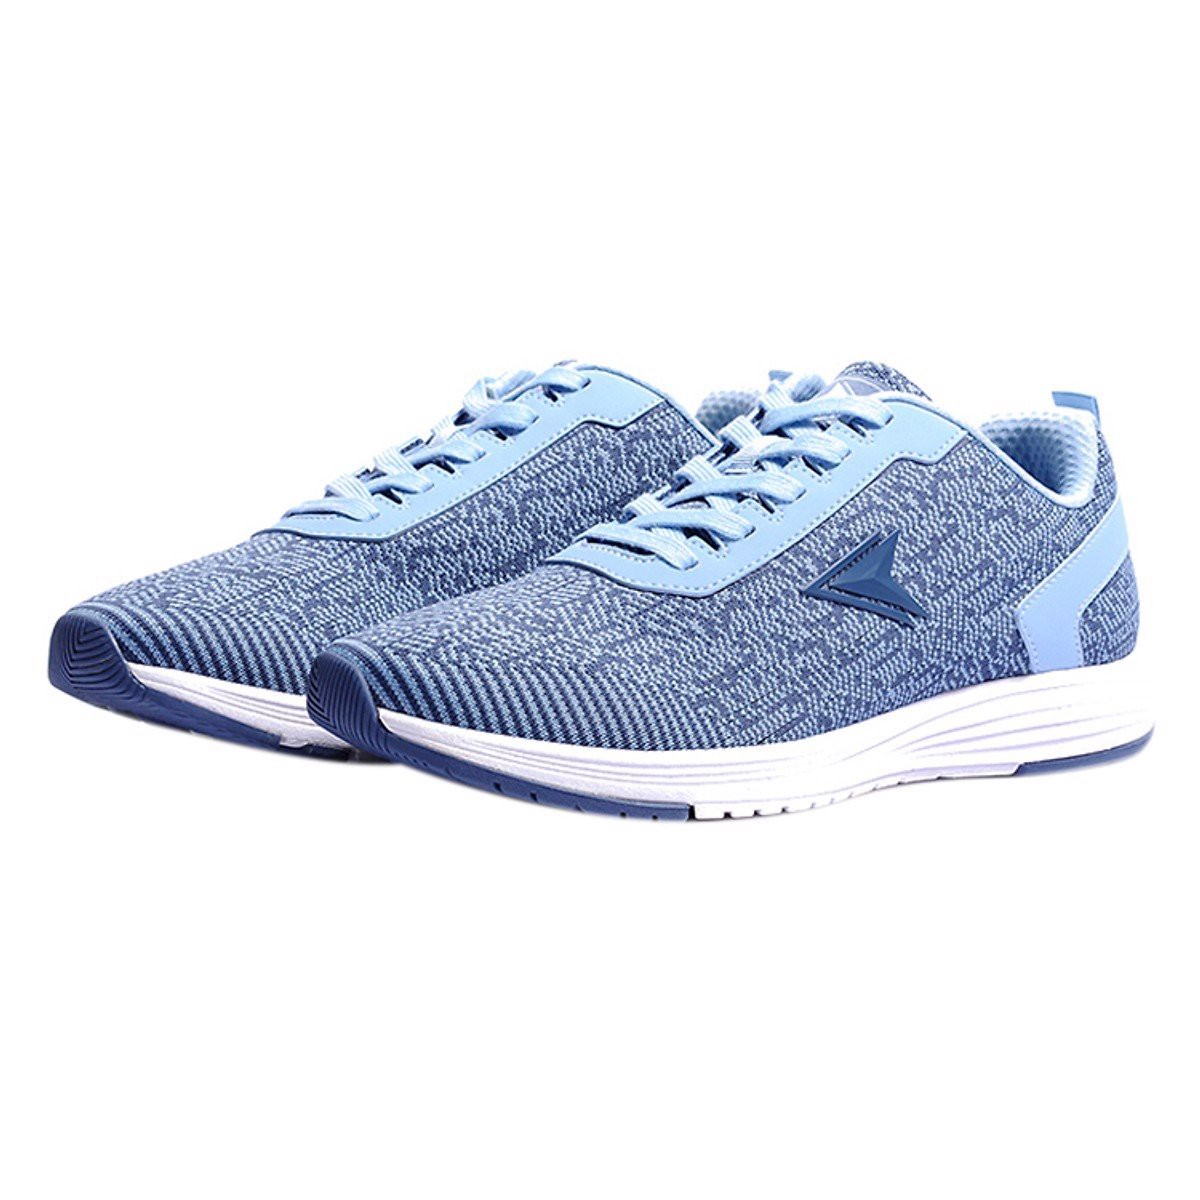 Giày Thể Thao Nam Biti's Hunter Collection Trial Collaboration - Tribal Baby Blue DSM068833XDG Size 40